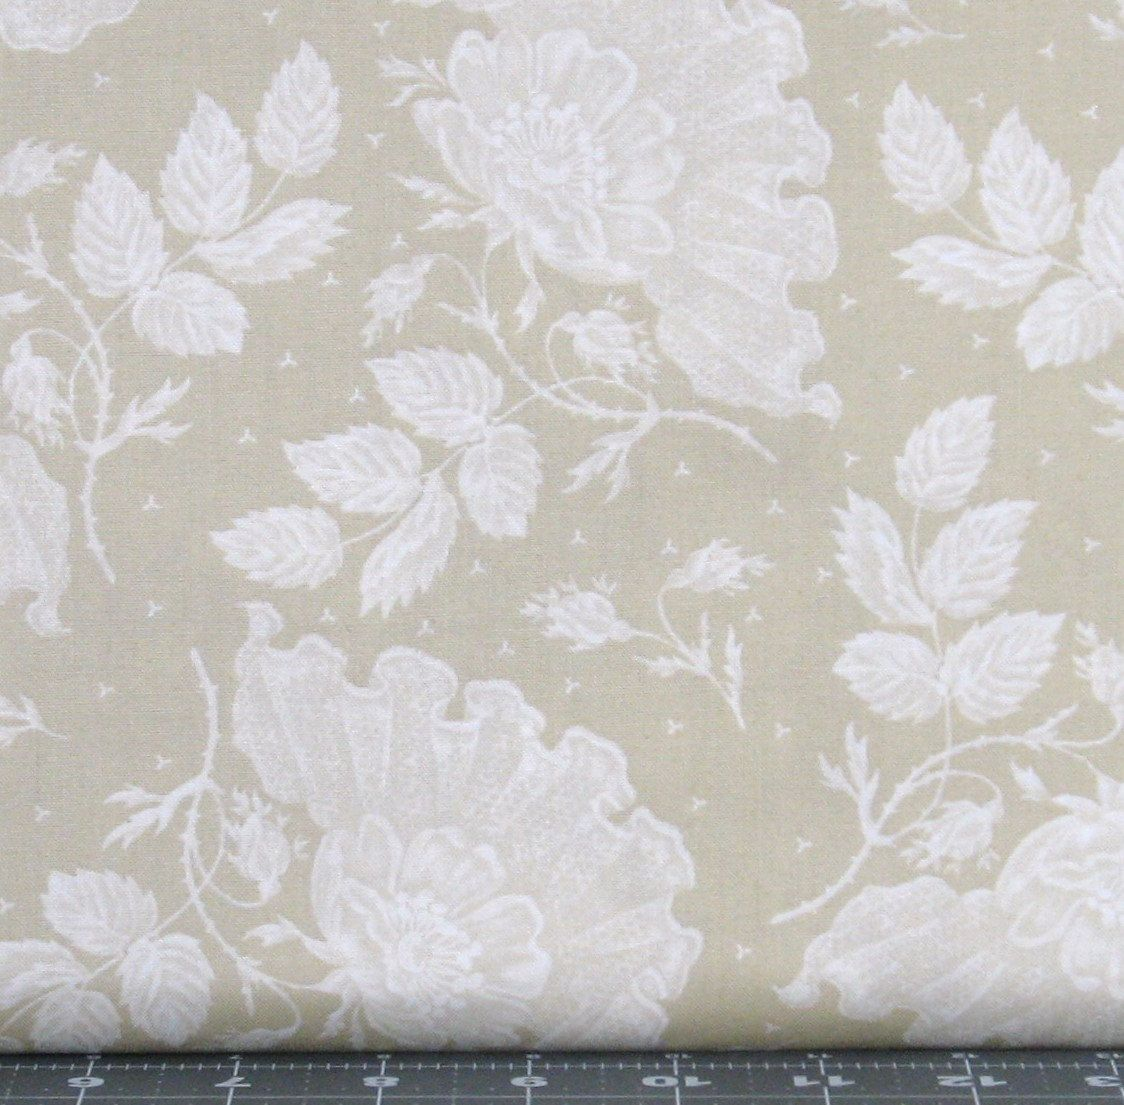 Ivory and White Tone on Tone Lace Design Cotton Quilt Fabric for ... : white tone on tone quilt fabric - Adamdwight.com